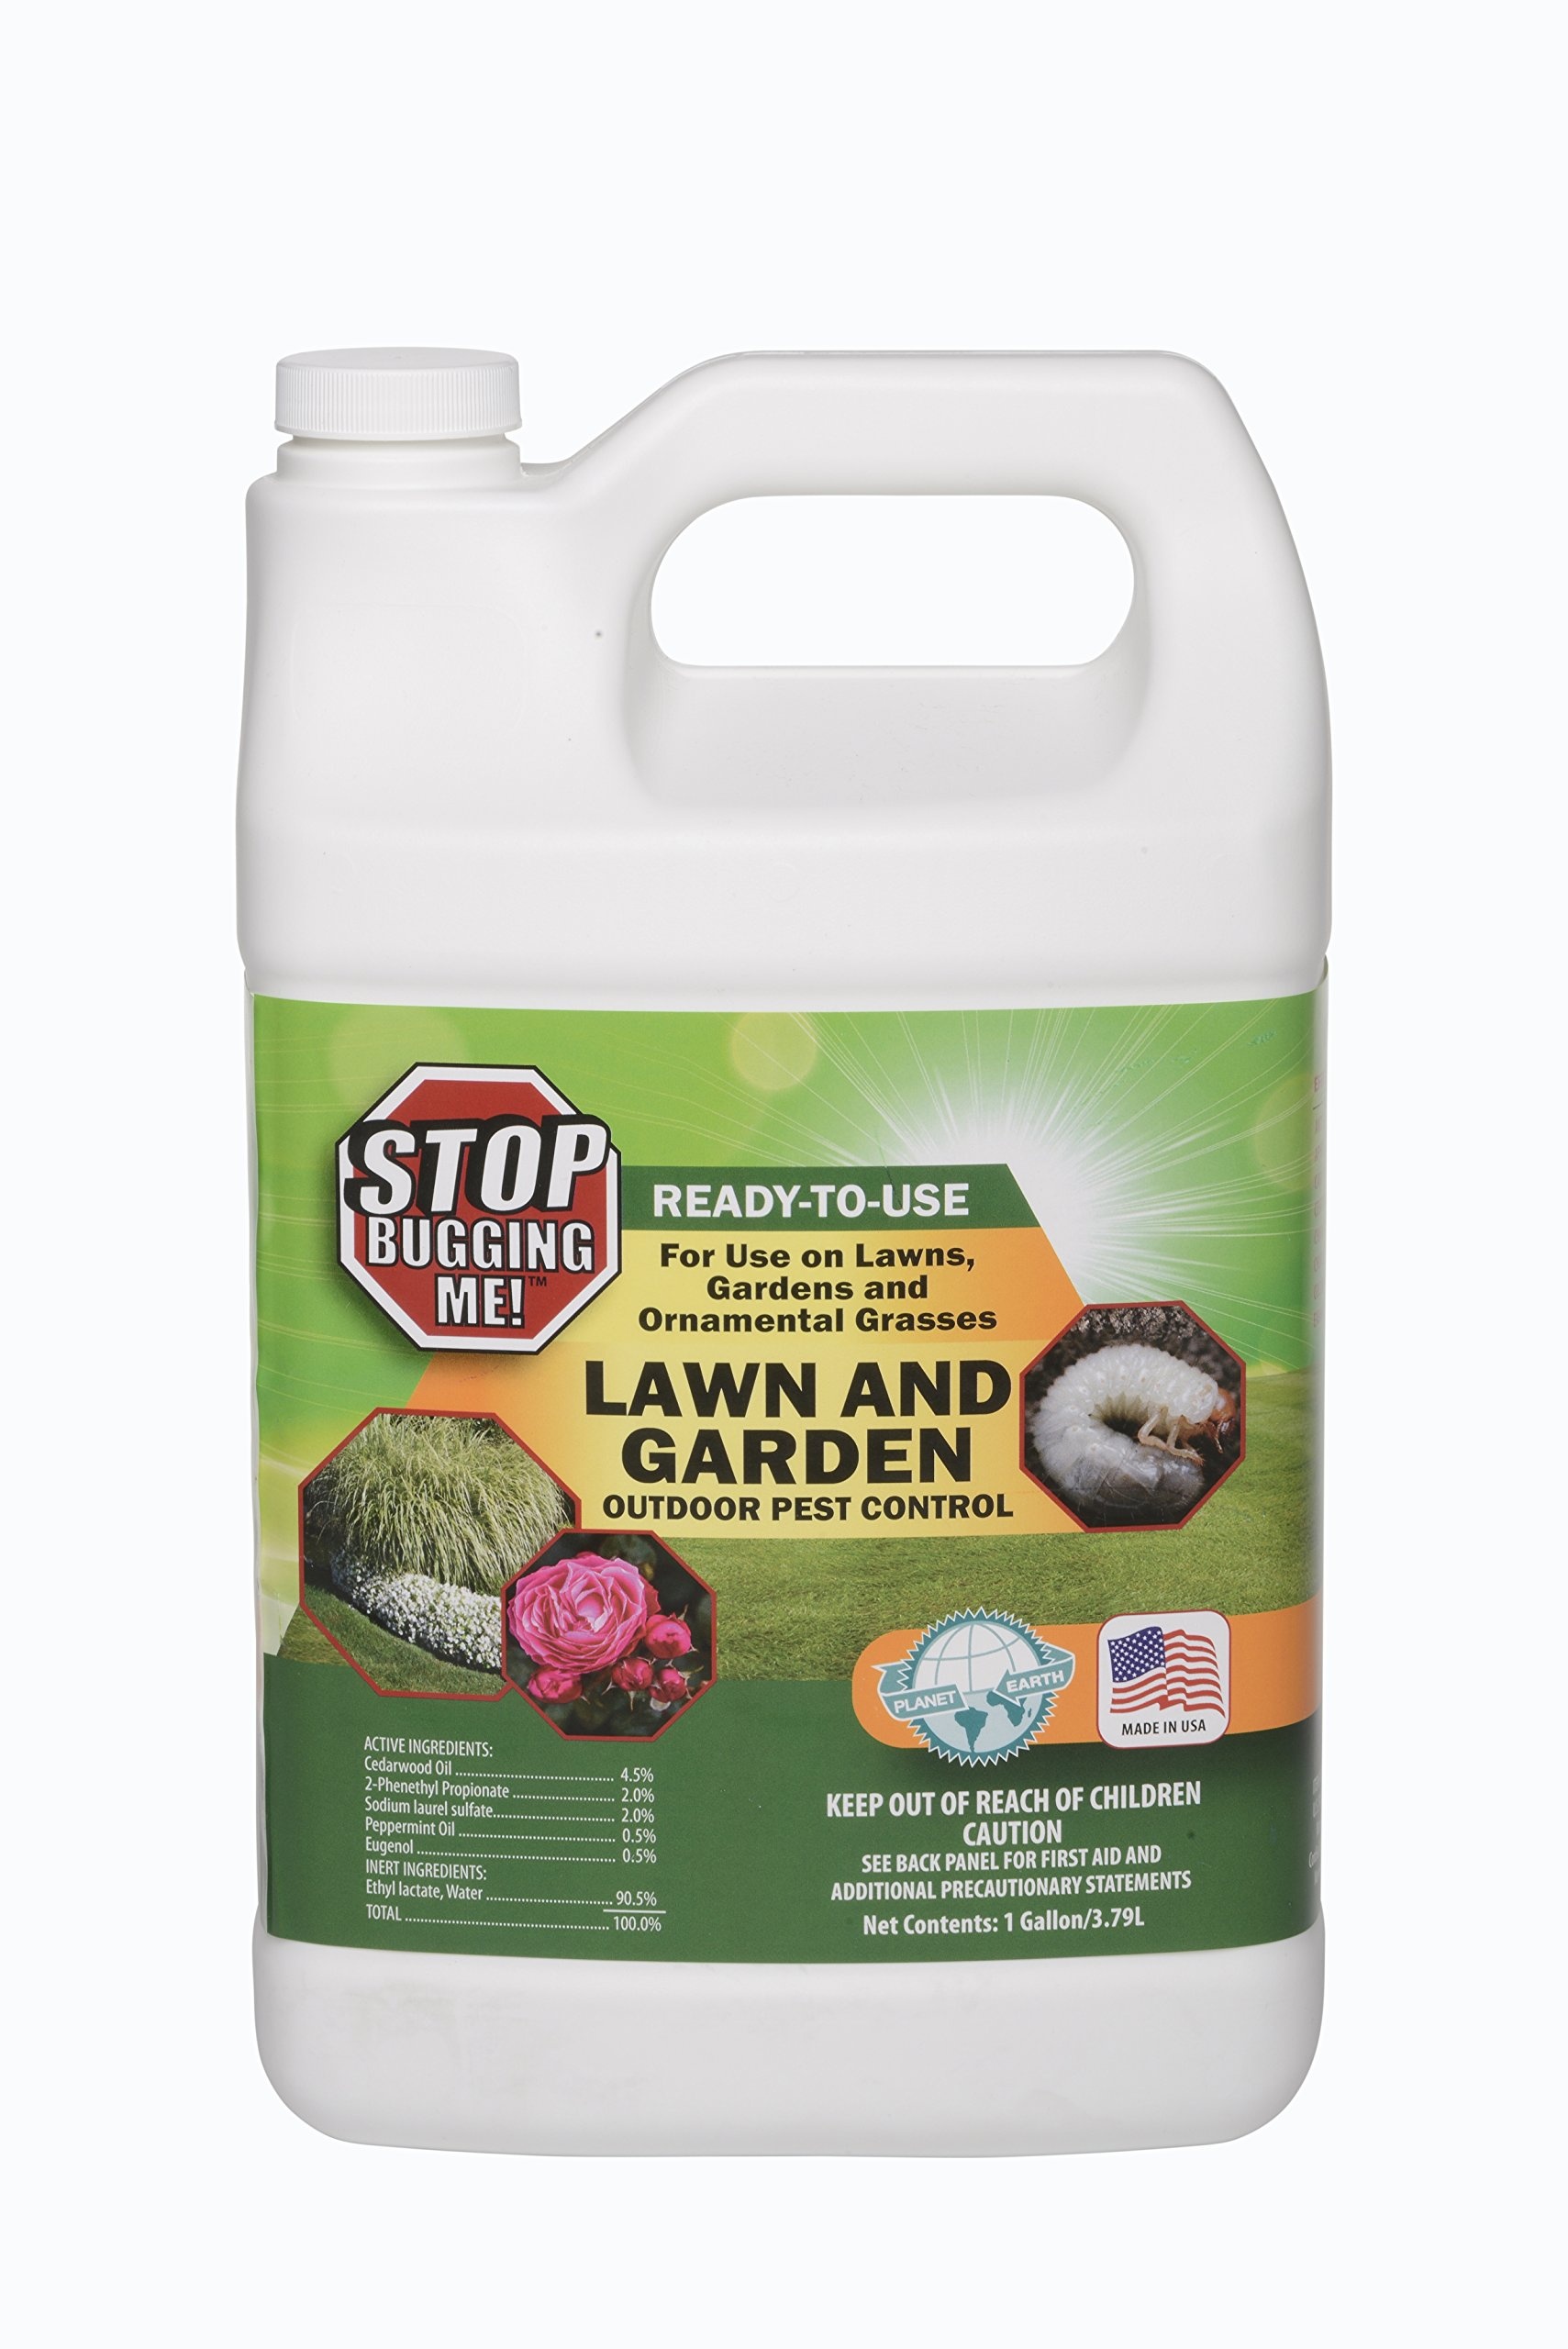 EcoClear Products 774531, Stop Bugging Me! All-Natural Non-Toxic Lawn & Garden Outdoor Pest Control, Ready to Use with Trigger Sprayer, 1-Gallon